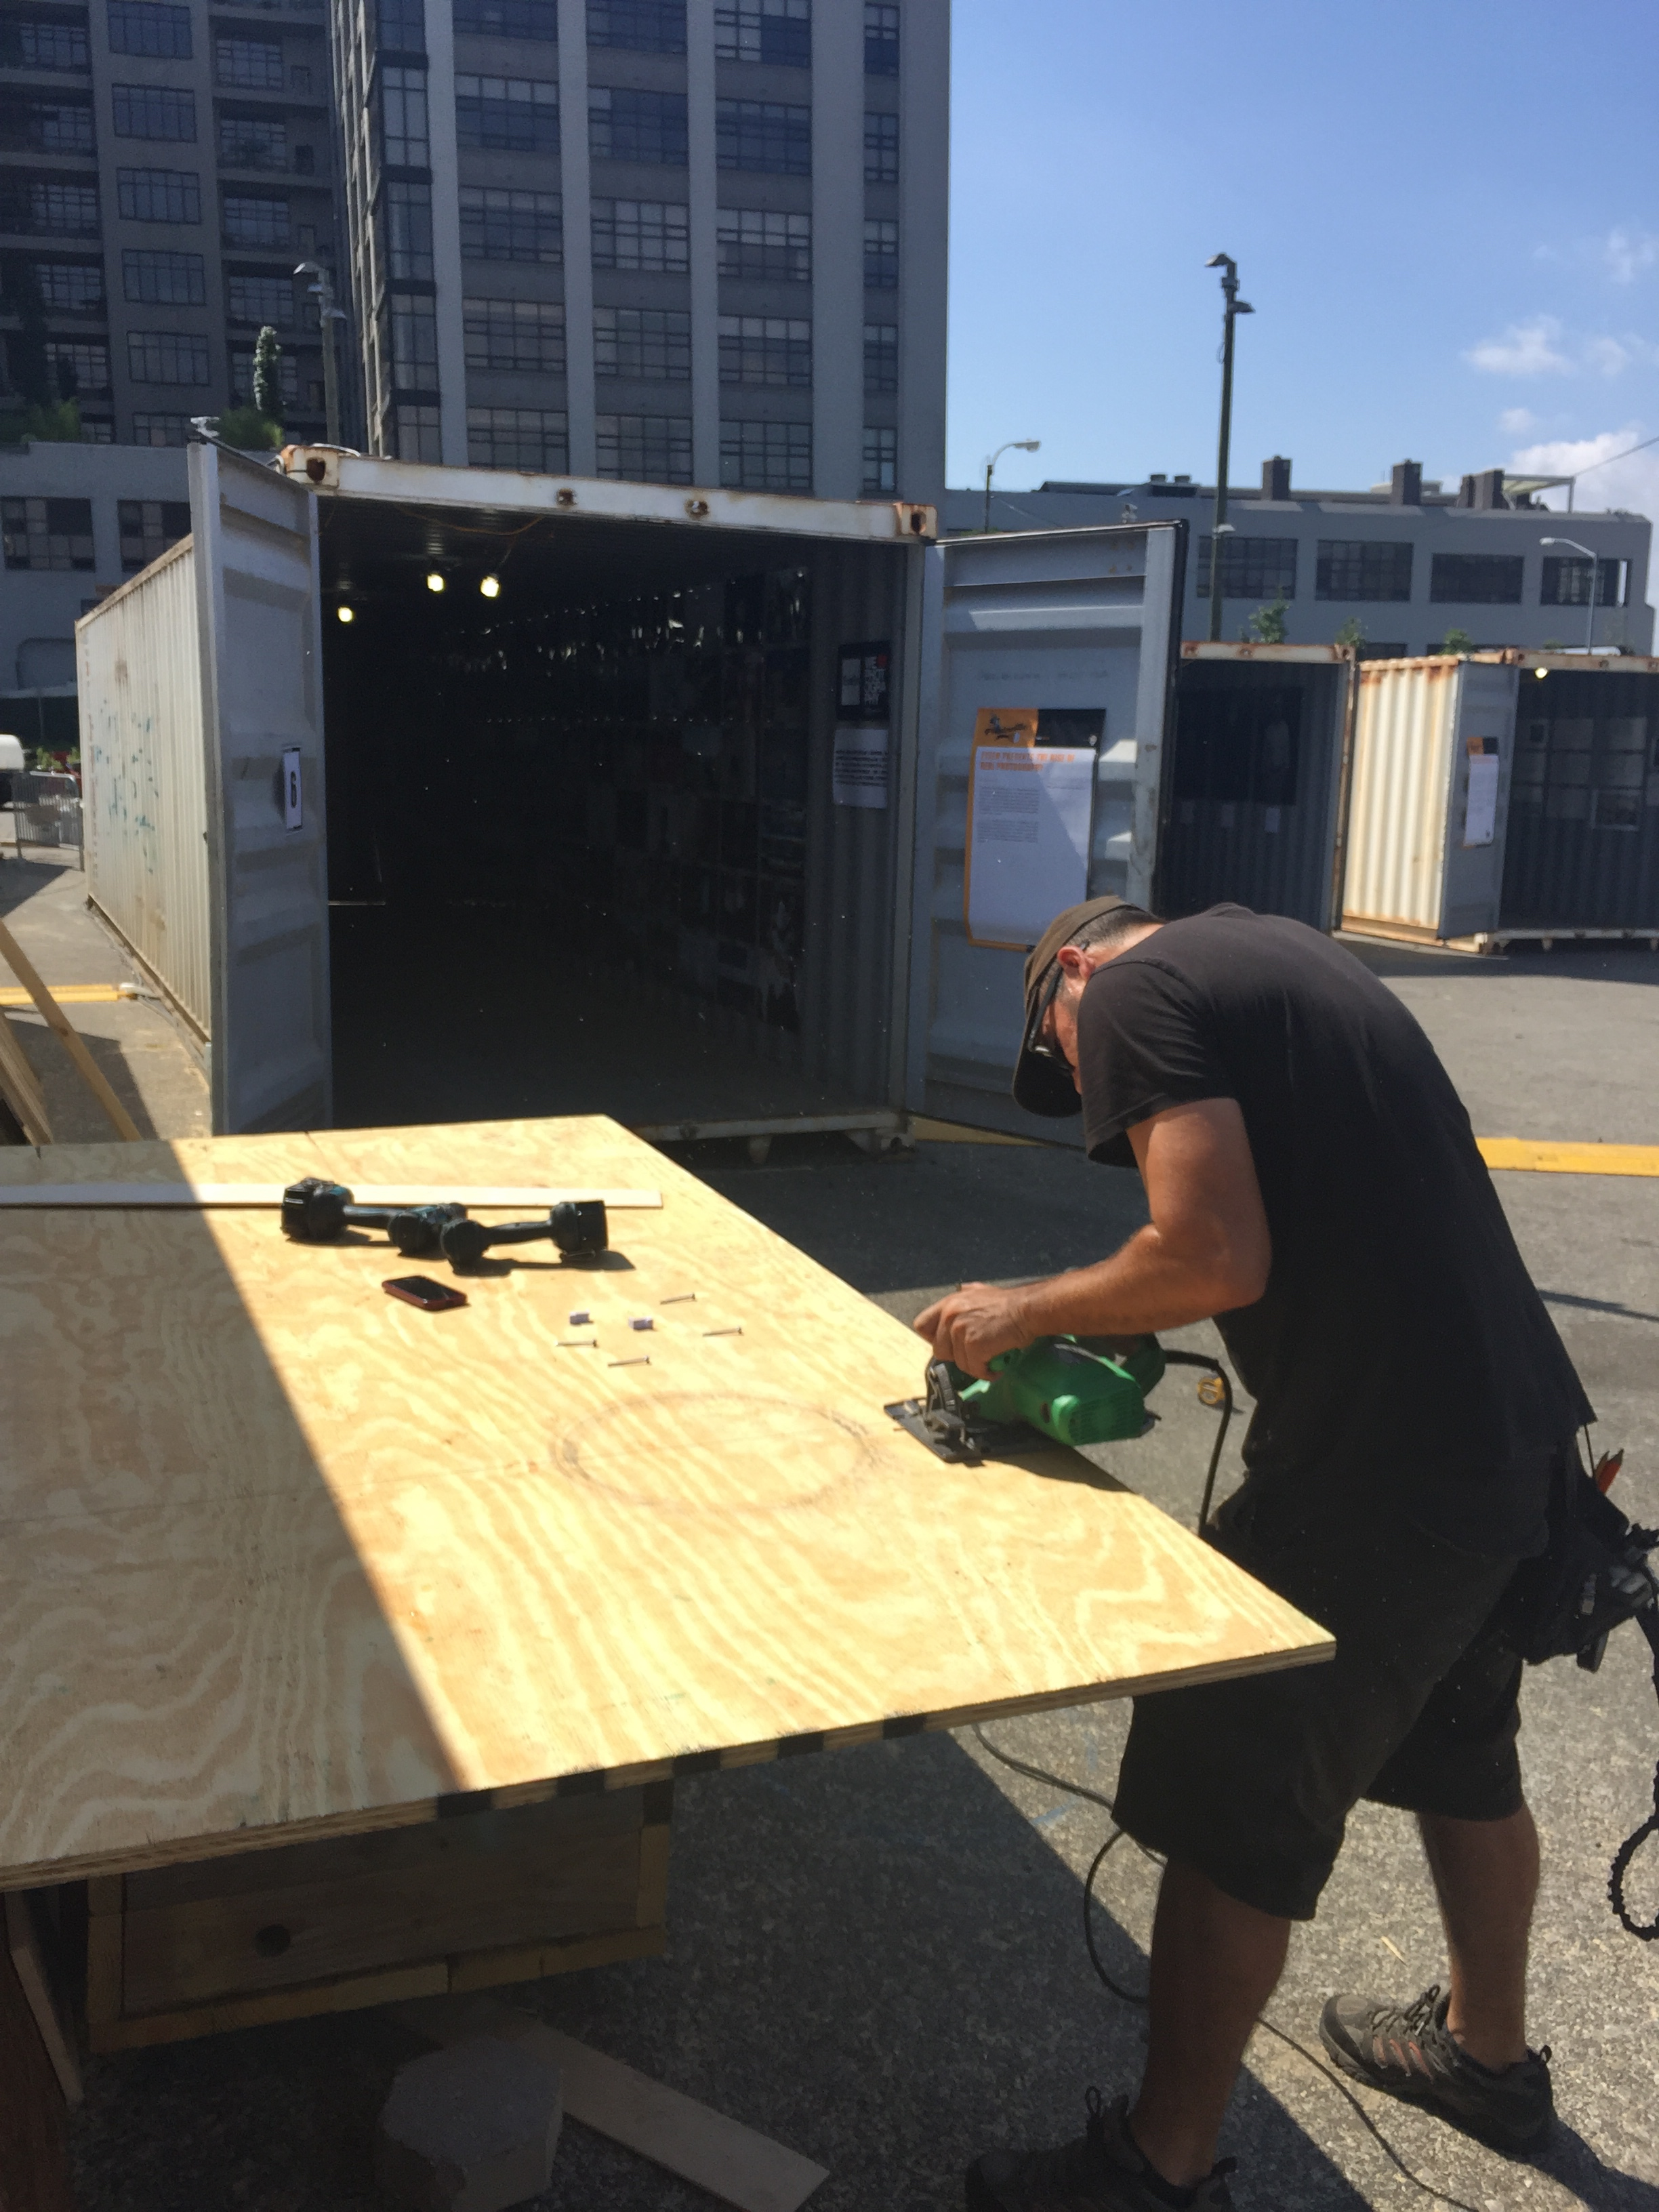 Cutting the plywood to place the vinyls.